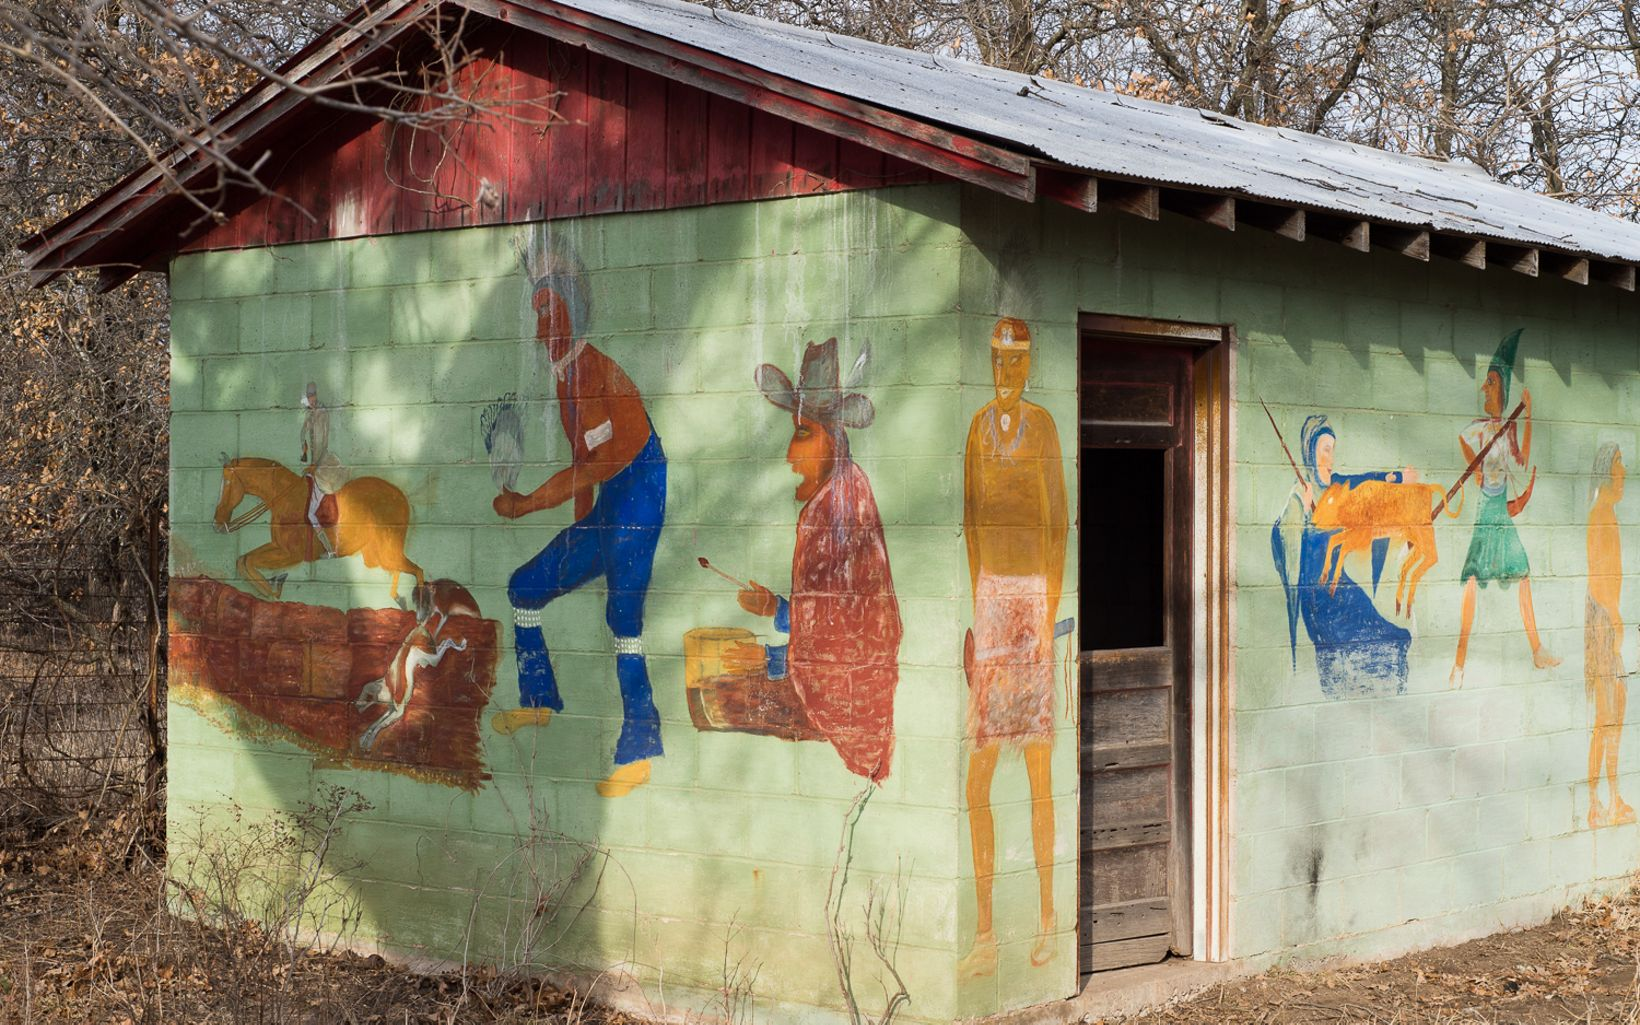 Mathews painted his depiction of the history of man on his outbuilding near the cabin.